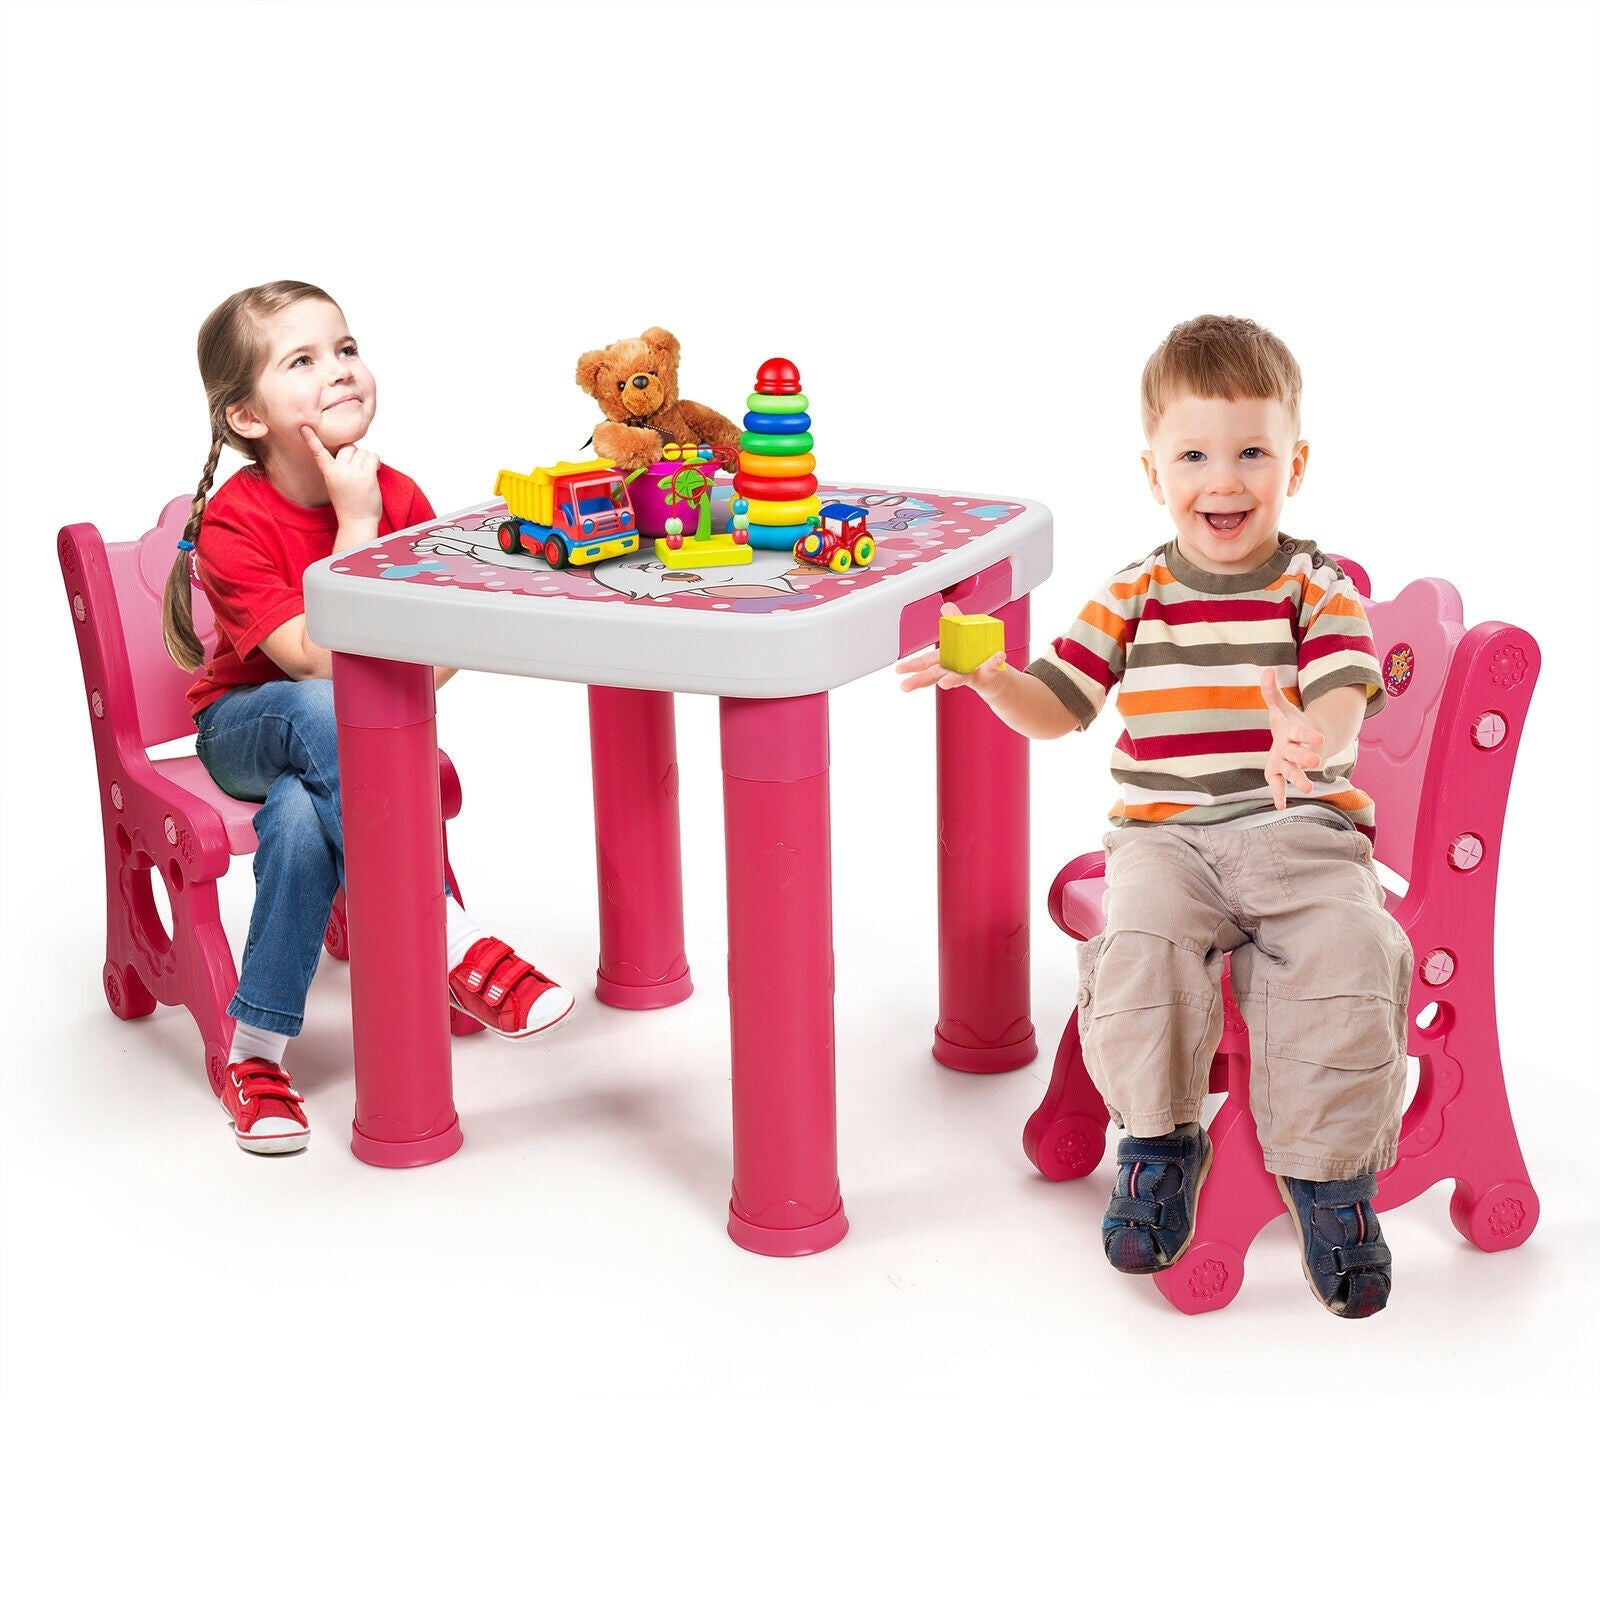 Deluxe Kids Activity Play Table and 2 Chairs Set with Storage Drawer - Morealis